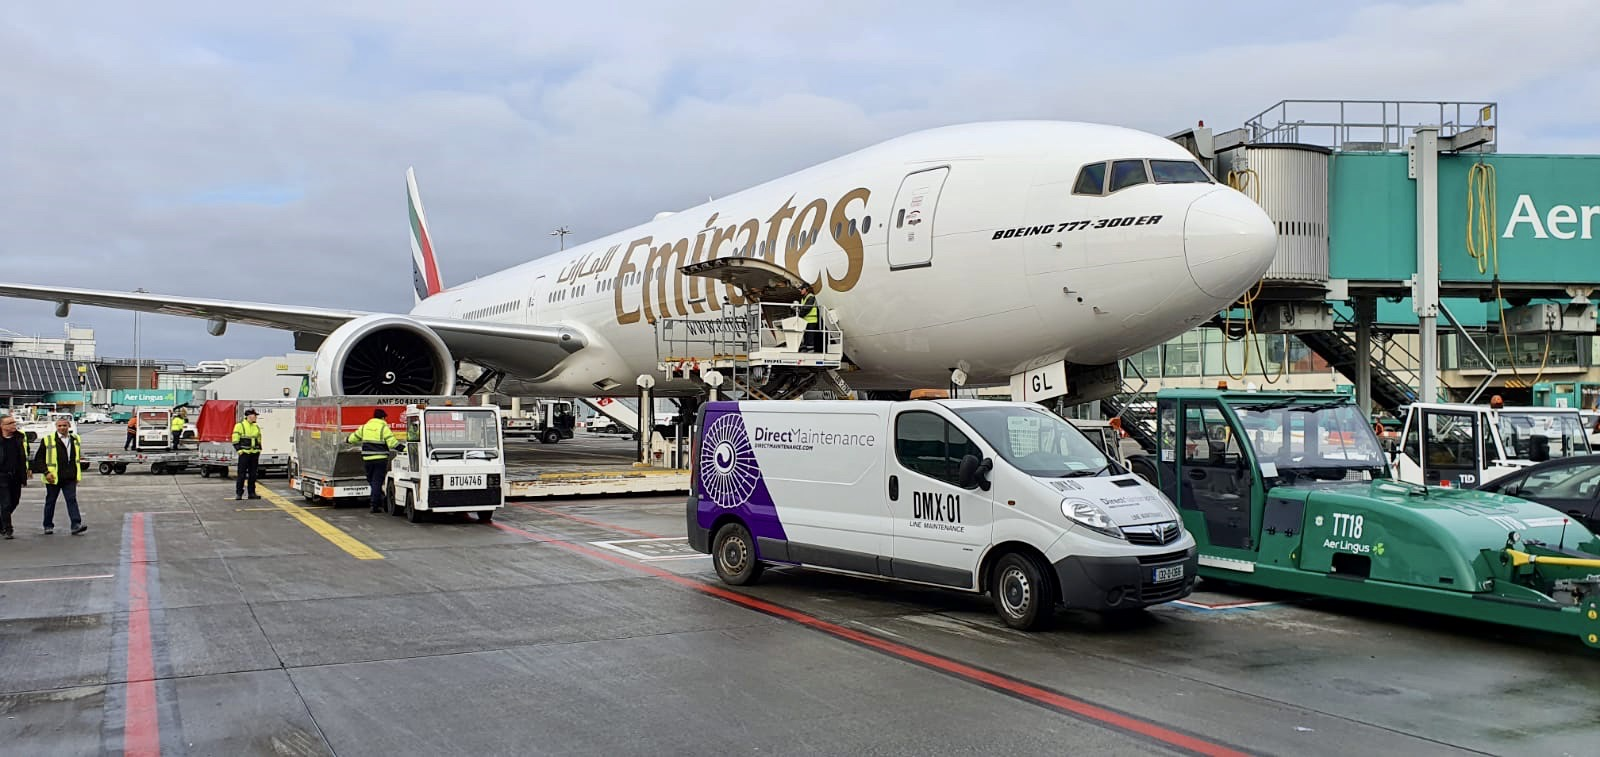 Direct Maintenance partners up with major flag carrier airline in Dublin